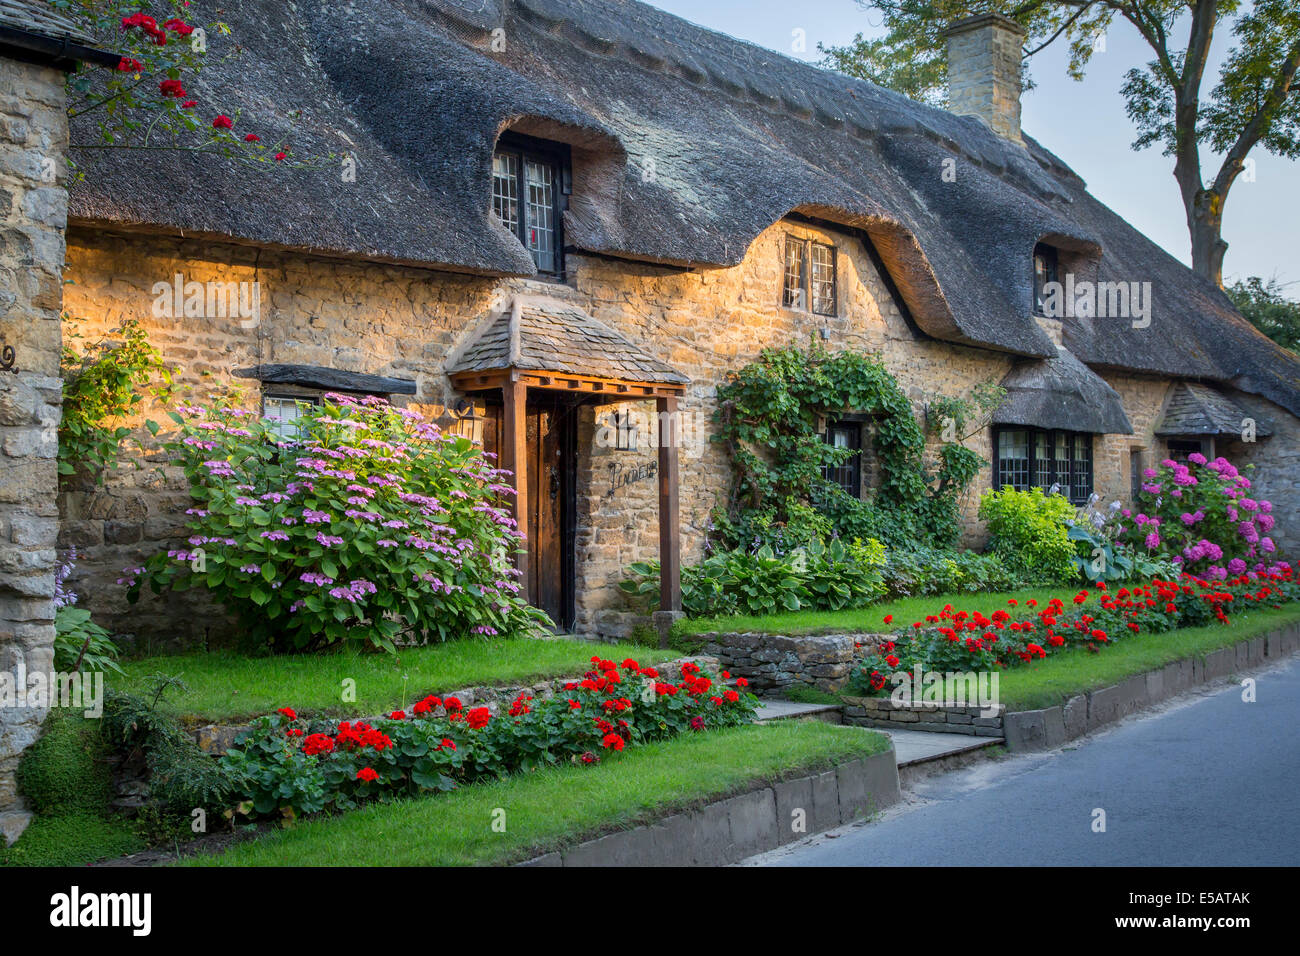 Thatch Roof Cottage In Broad Campden The Cotswolds Gloucestershire England